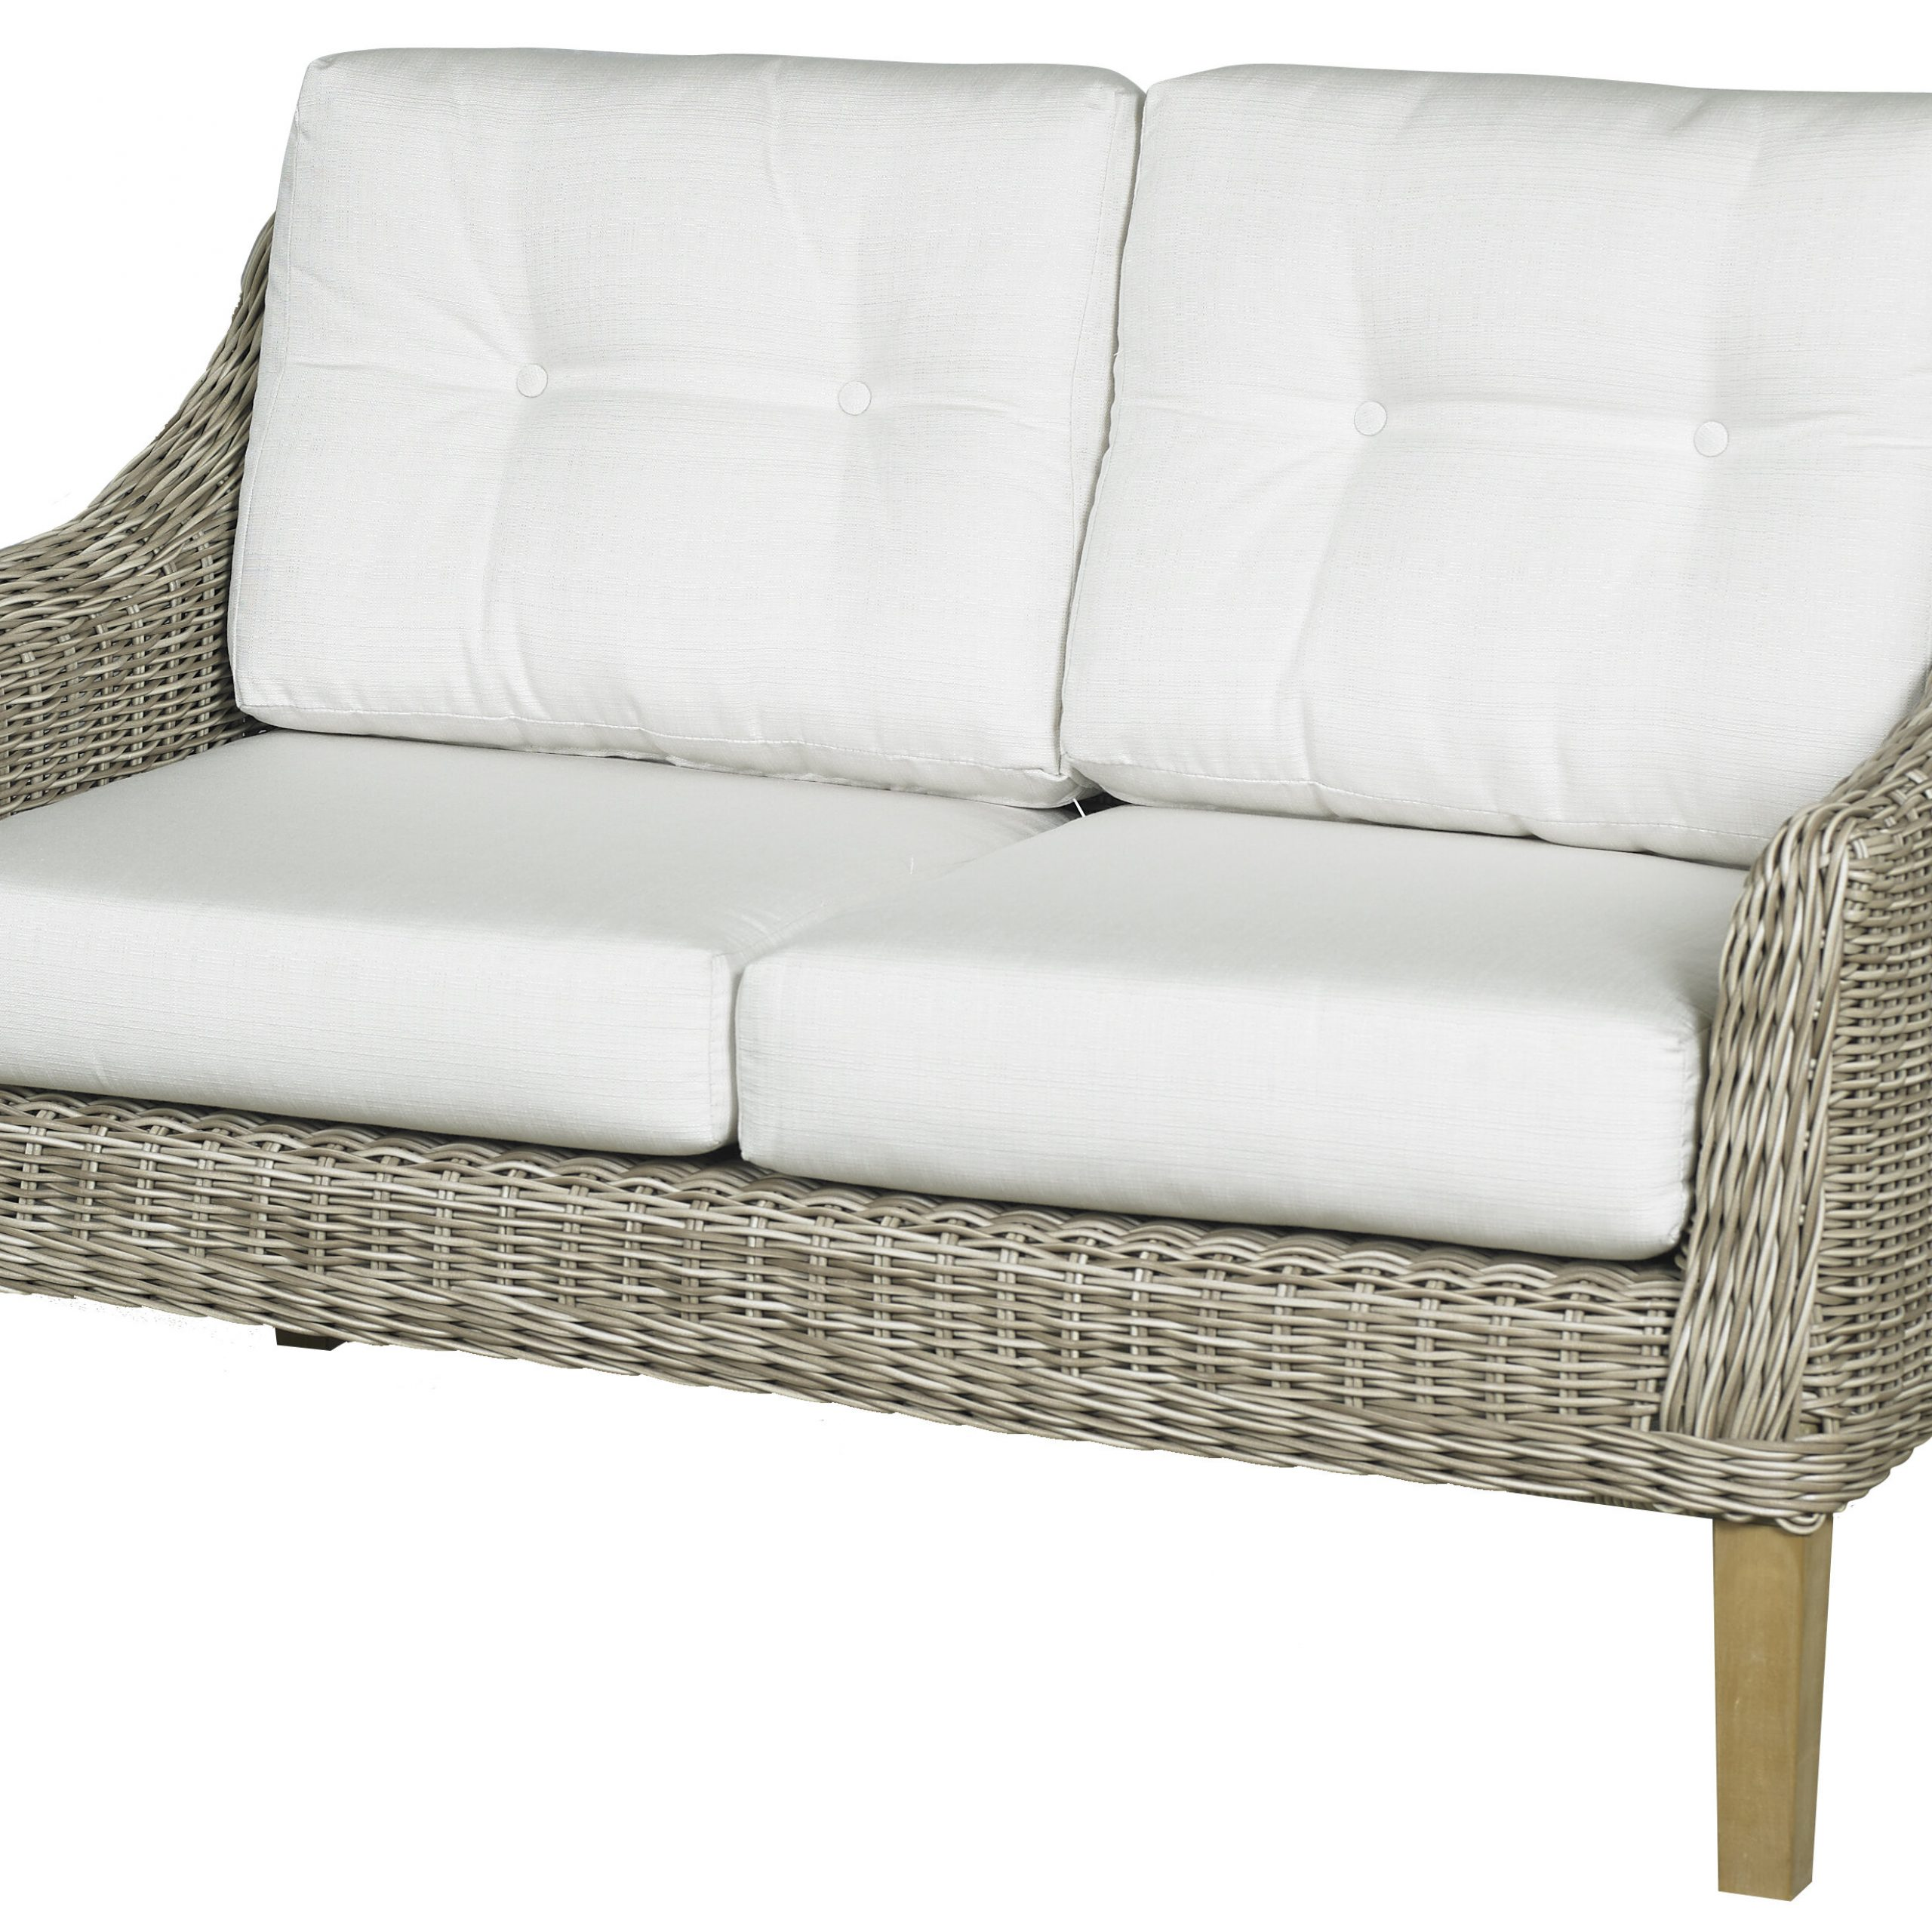 Most Current Wakeland Wicker Loveseats With Cushions Inside Forever Patio Carlisle Loveseat With Cushions (View 22 of 25)